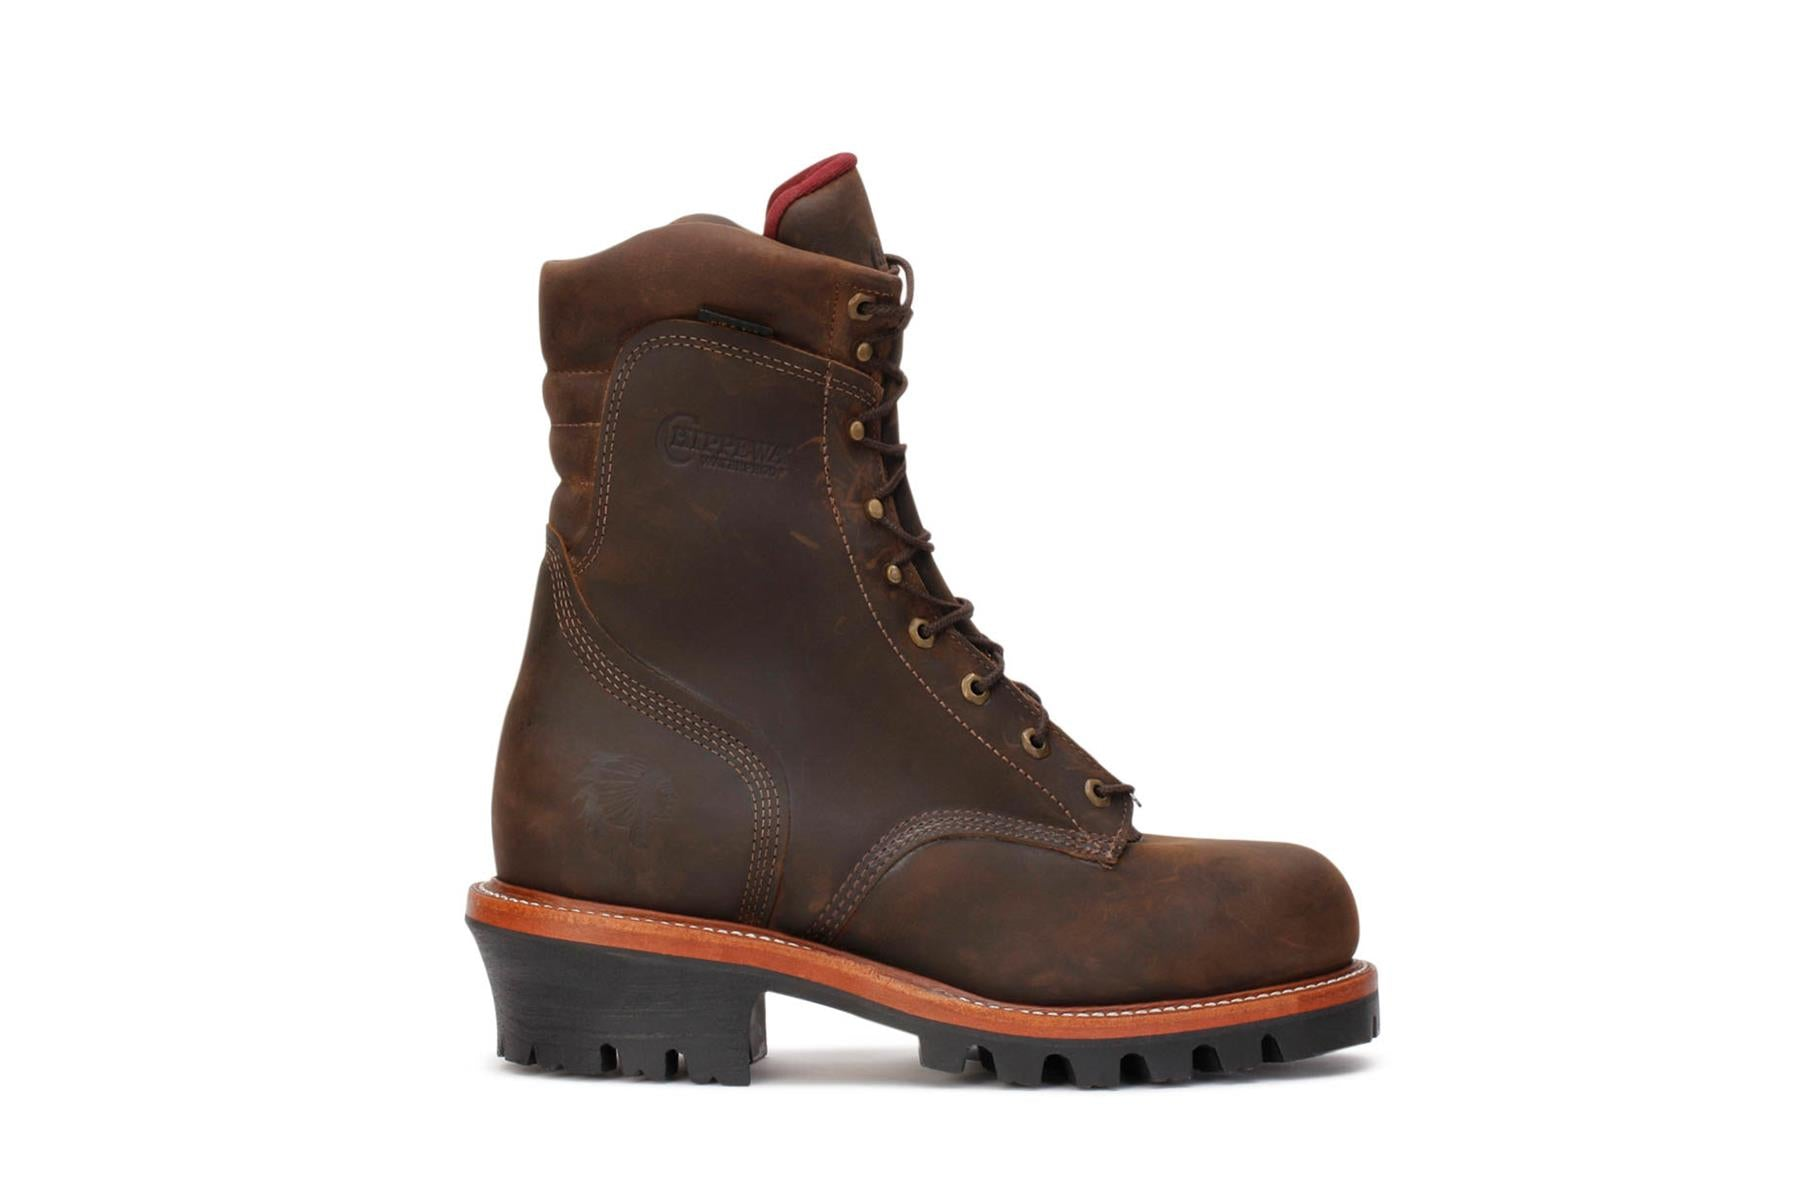 chippewa-mens-8-bay-apache-ellicott-steel-toe-waterproof-boots-brown-26330-main